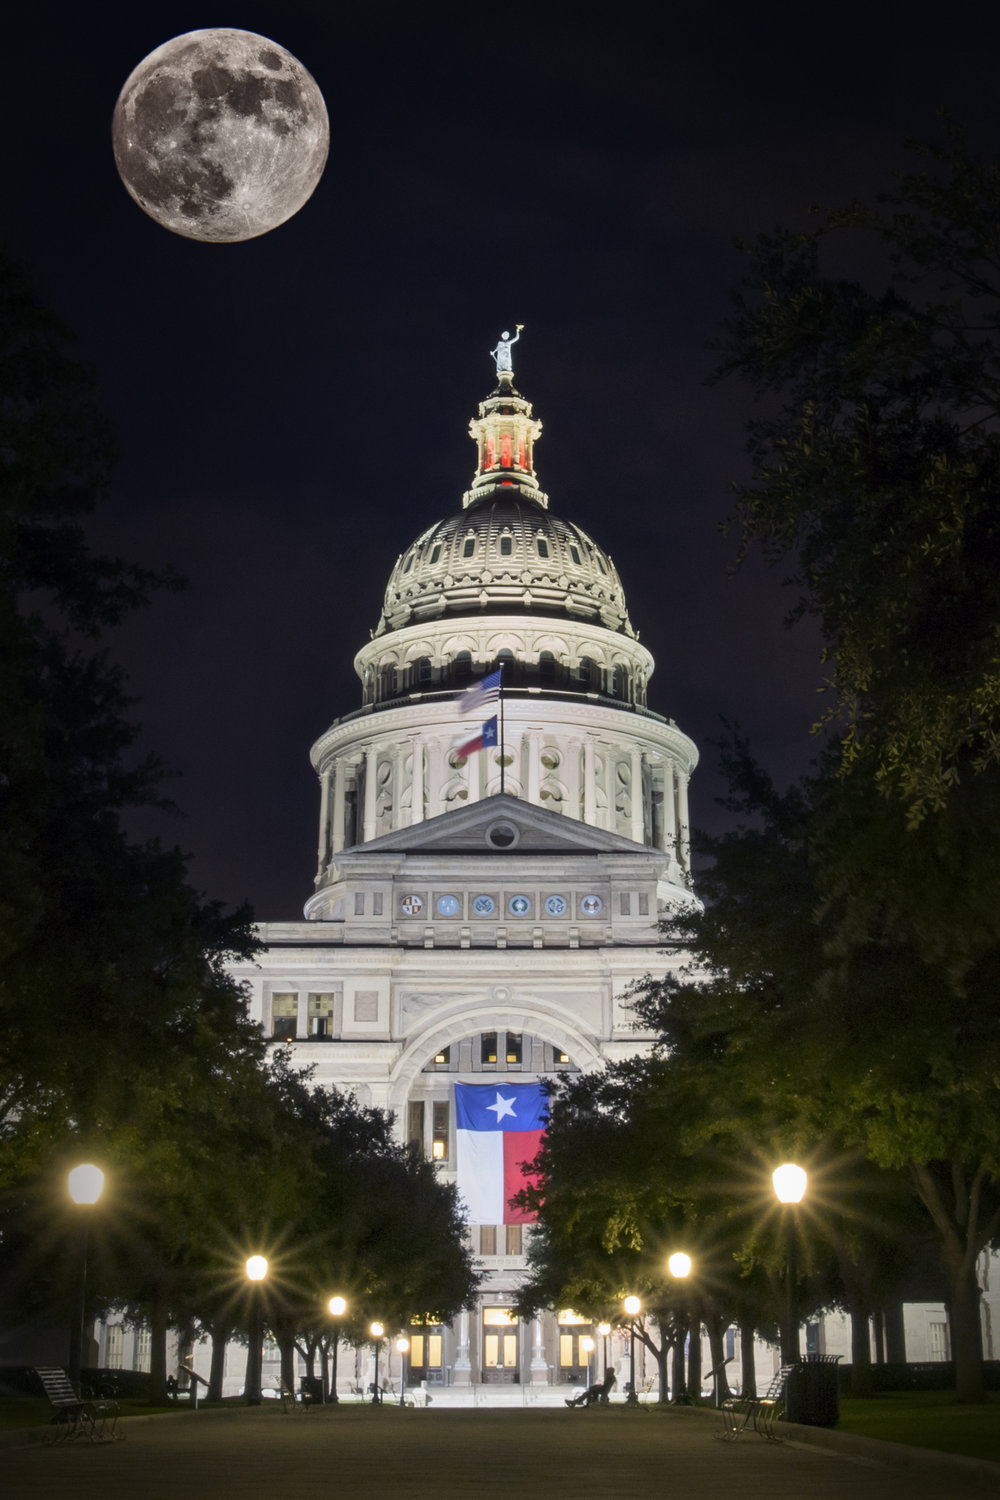 The moon composited into an image of the Texas State Capitol.